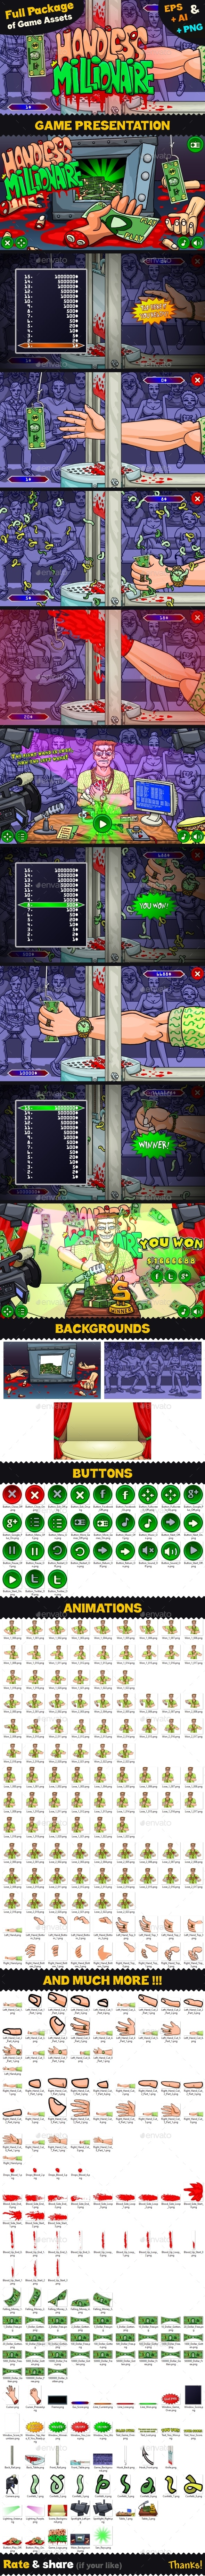 Game Assets for Handless Millionaire - Game Kits Game Assets